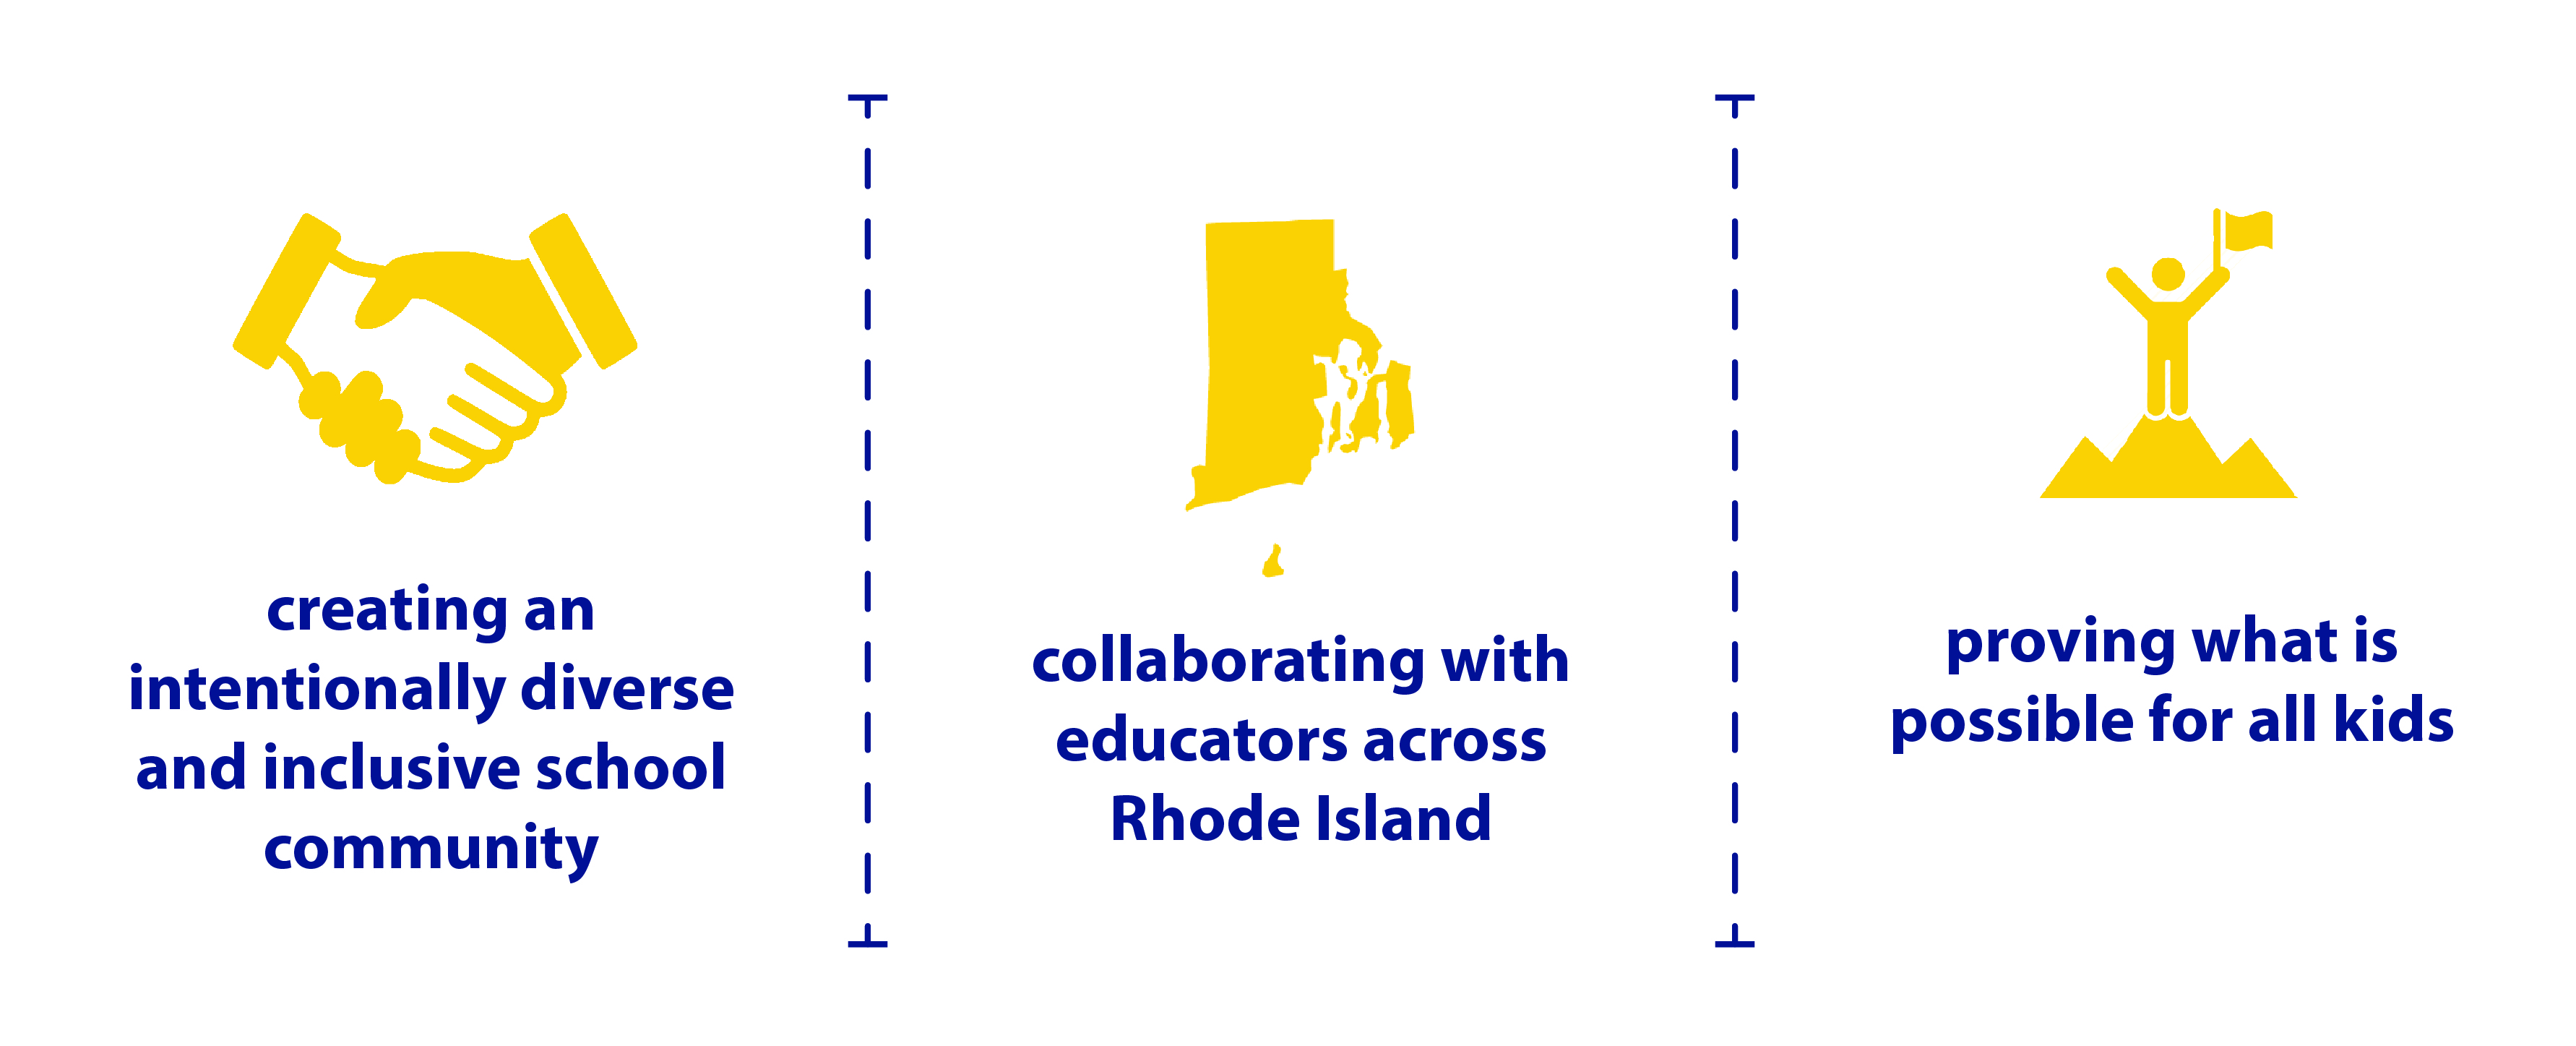 Vision Statement Graphic: creating an intentionally diverse and inclusive school community, collaborating with educators across Rhode Island, and proving what is possible for all kids